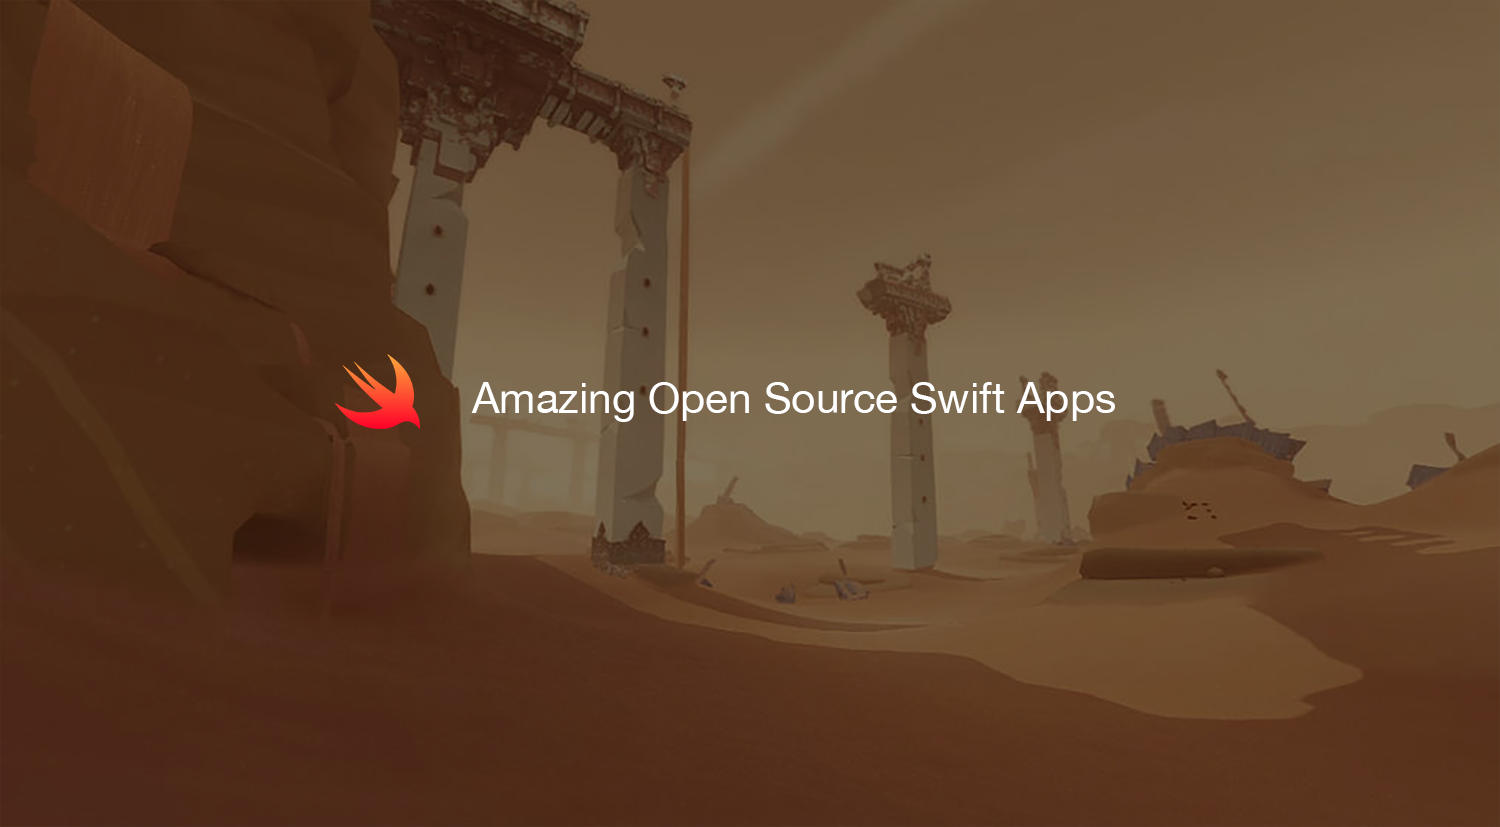 21 Amazing Open Source iOS Apps Written in Swift - Mybridge